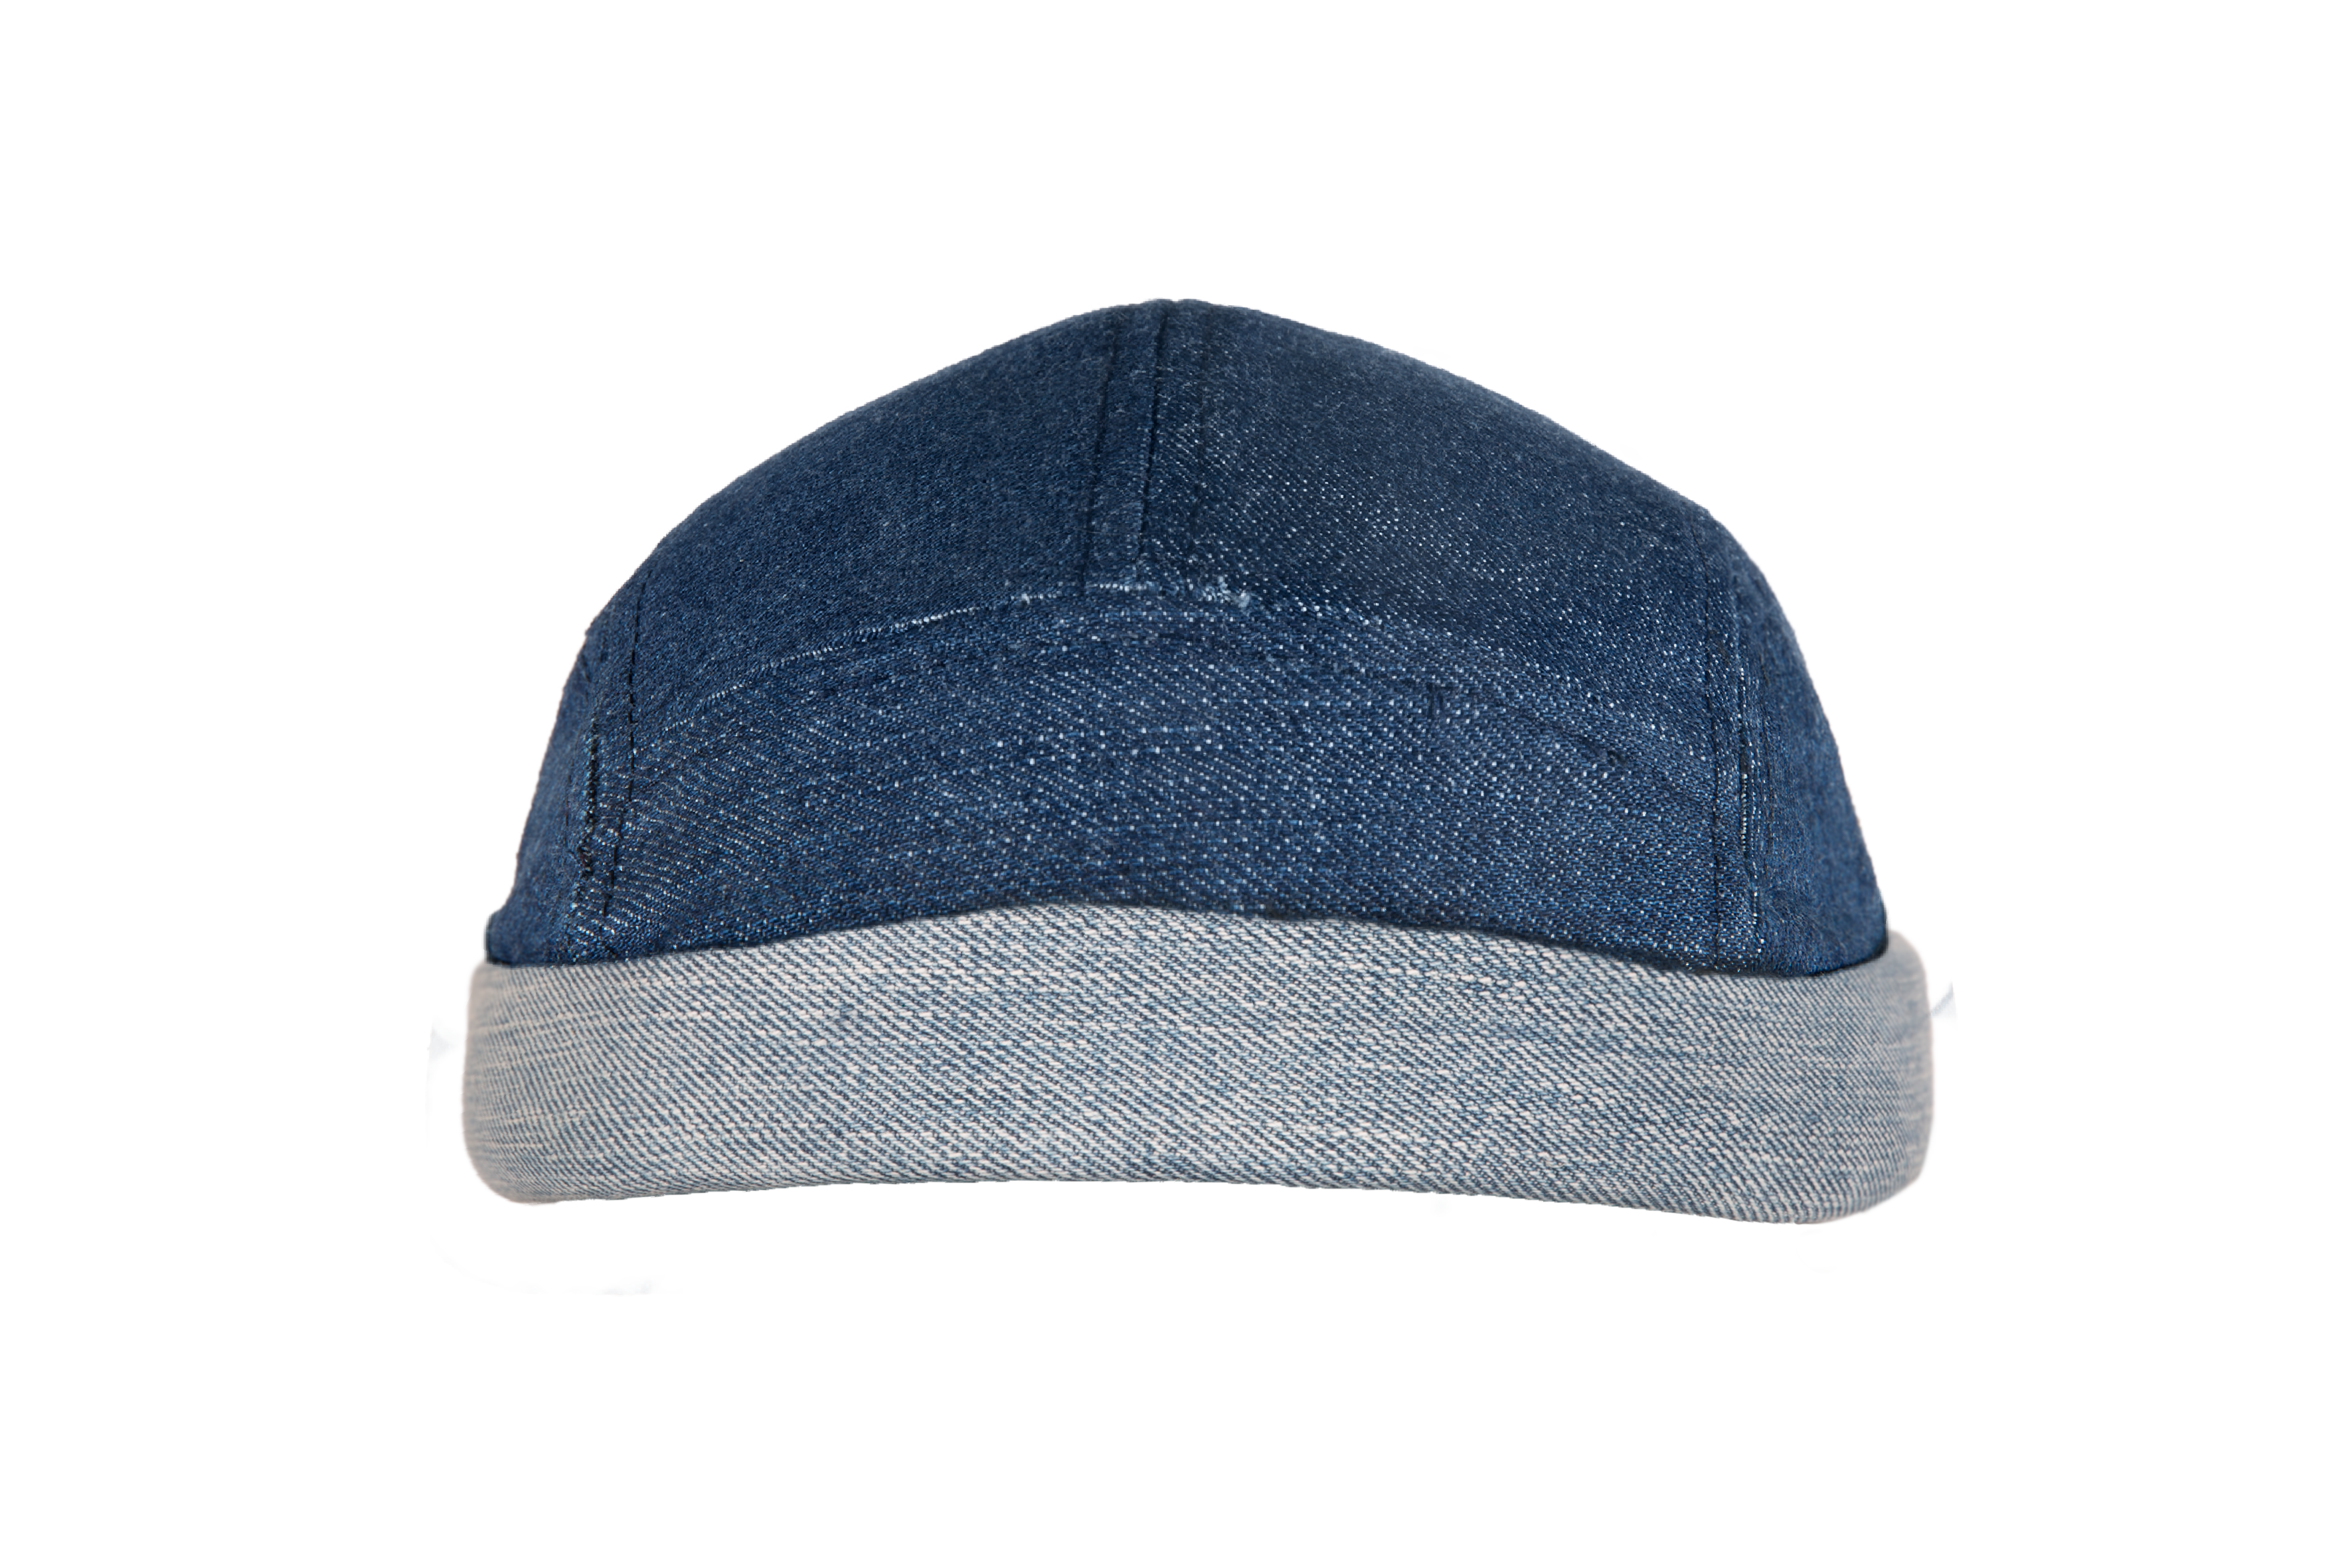 Miki breton bleu brut & stoned, modèle édition limitée, 100% coton, Miaraka, réglable, adaptable, unisexe, uniforme, 5 panel, authentique, vintage, éthique, docker miki, worker hat, textile, denim, résistant, miki jean, fait à la main, made in France, must have, incontournable, tendance, couvre chef, accessoire iconique, chapellerie unique, fashion, streetwear, casual, miki addict, sneaker addict, collection, haut de gamme, environnement, marins, résistant, surecyclage, bonnet, modèle de créateur déposé